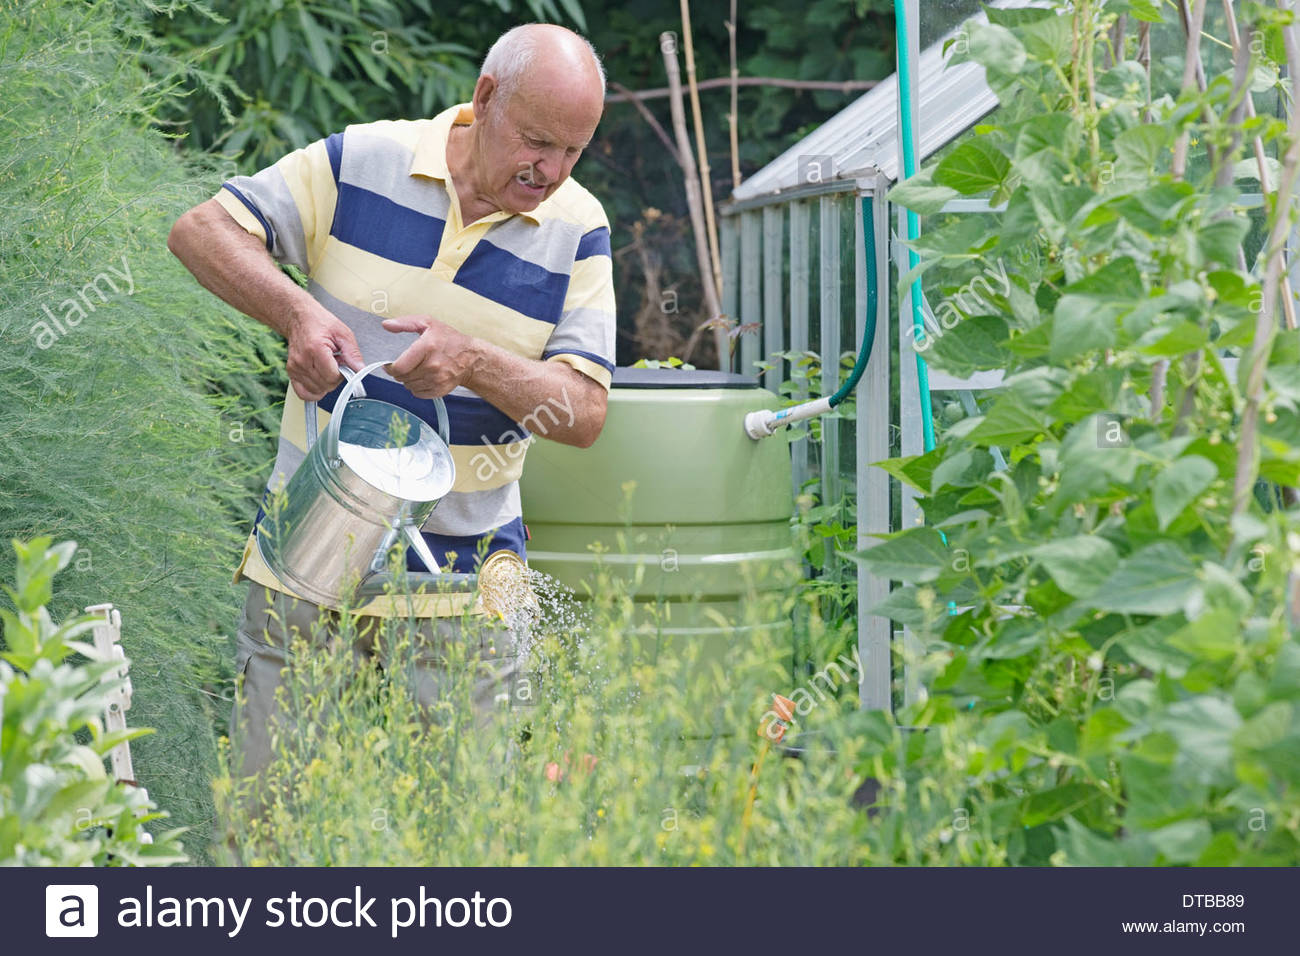 Senior Man Watering Vegetable Garden From Rain Barrel